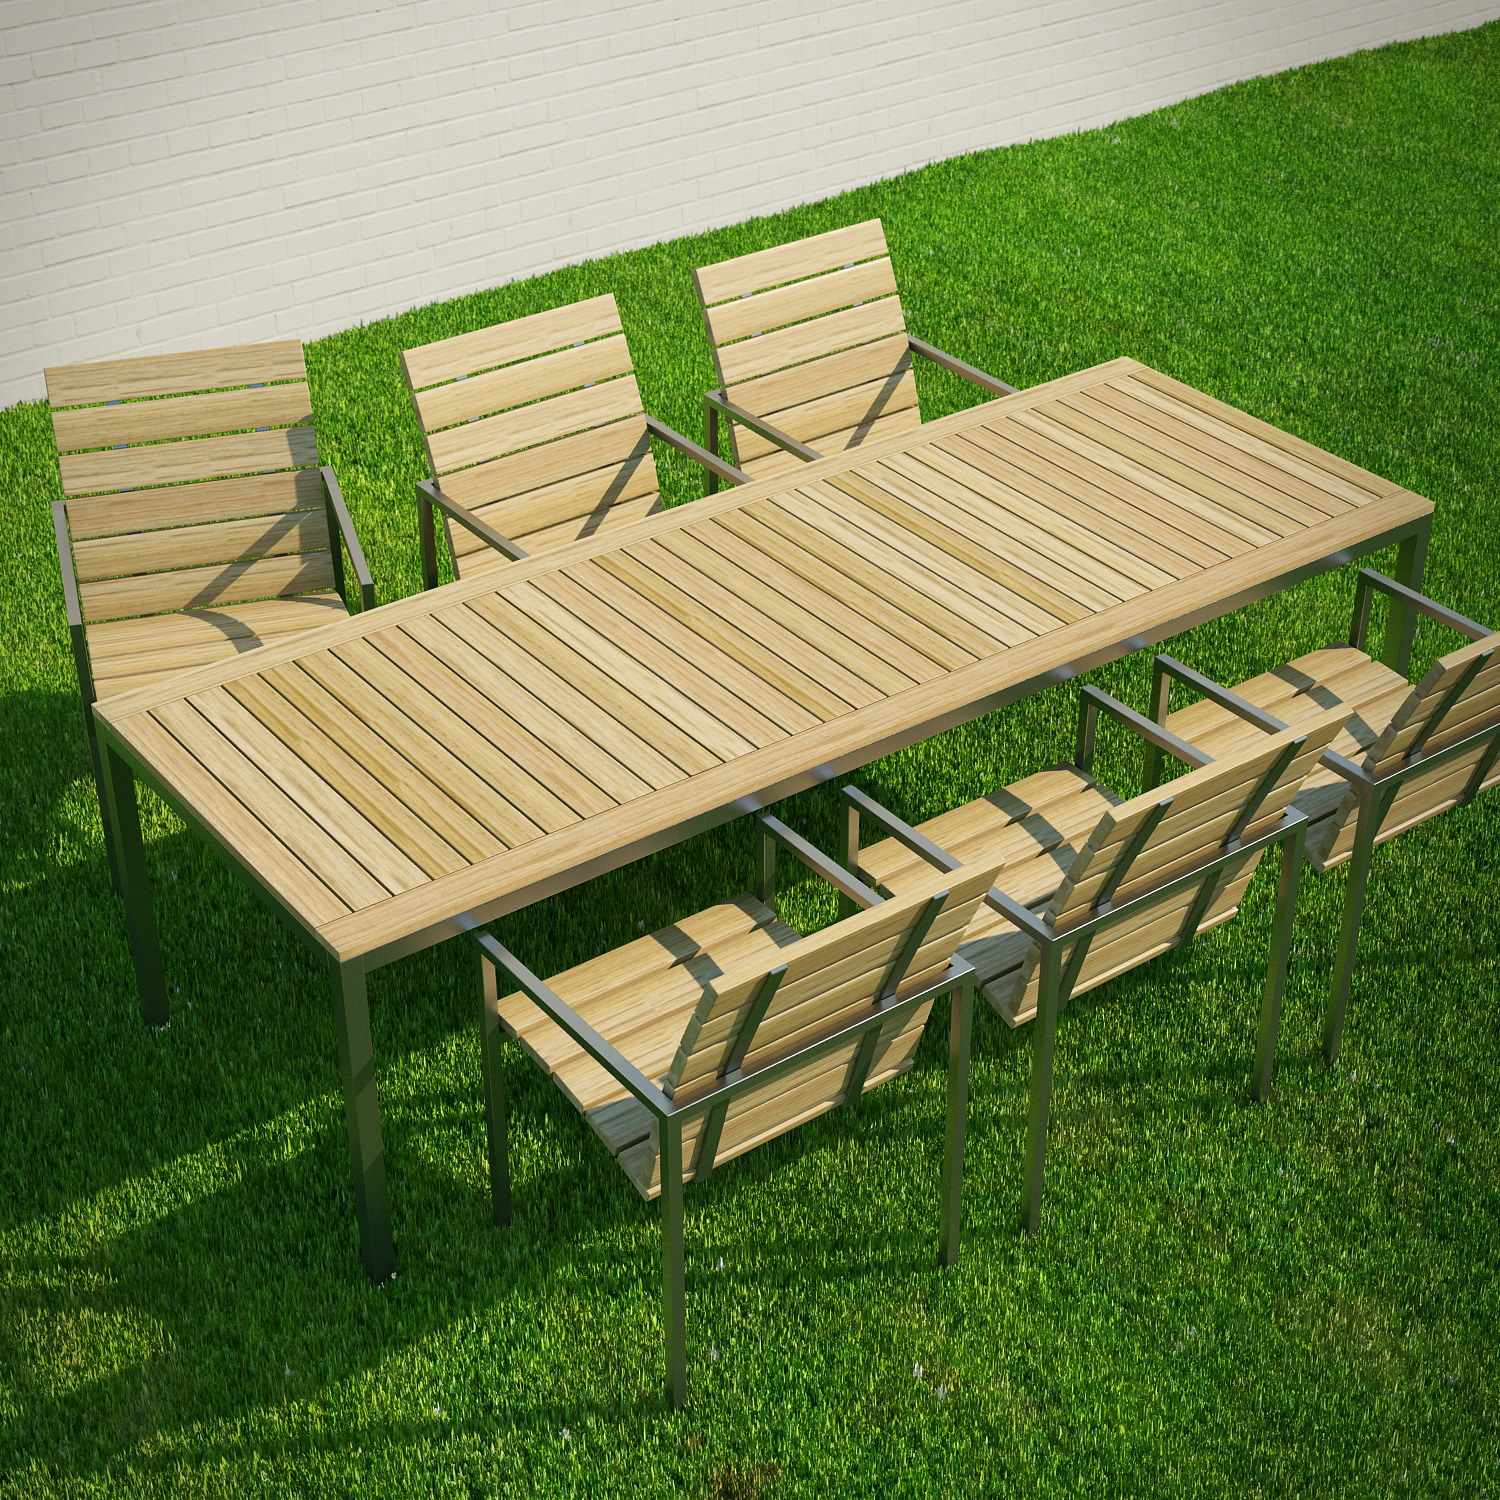 Garden Table and Chairs 3D Model by 3dlands